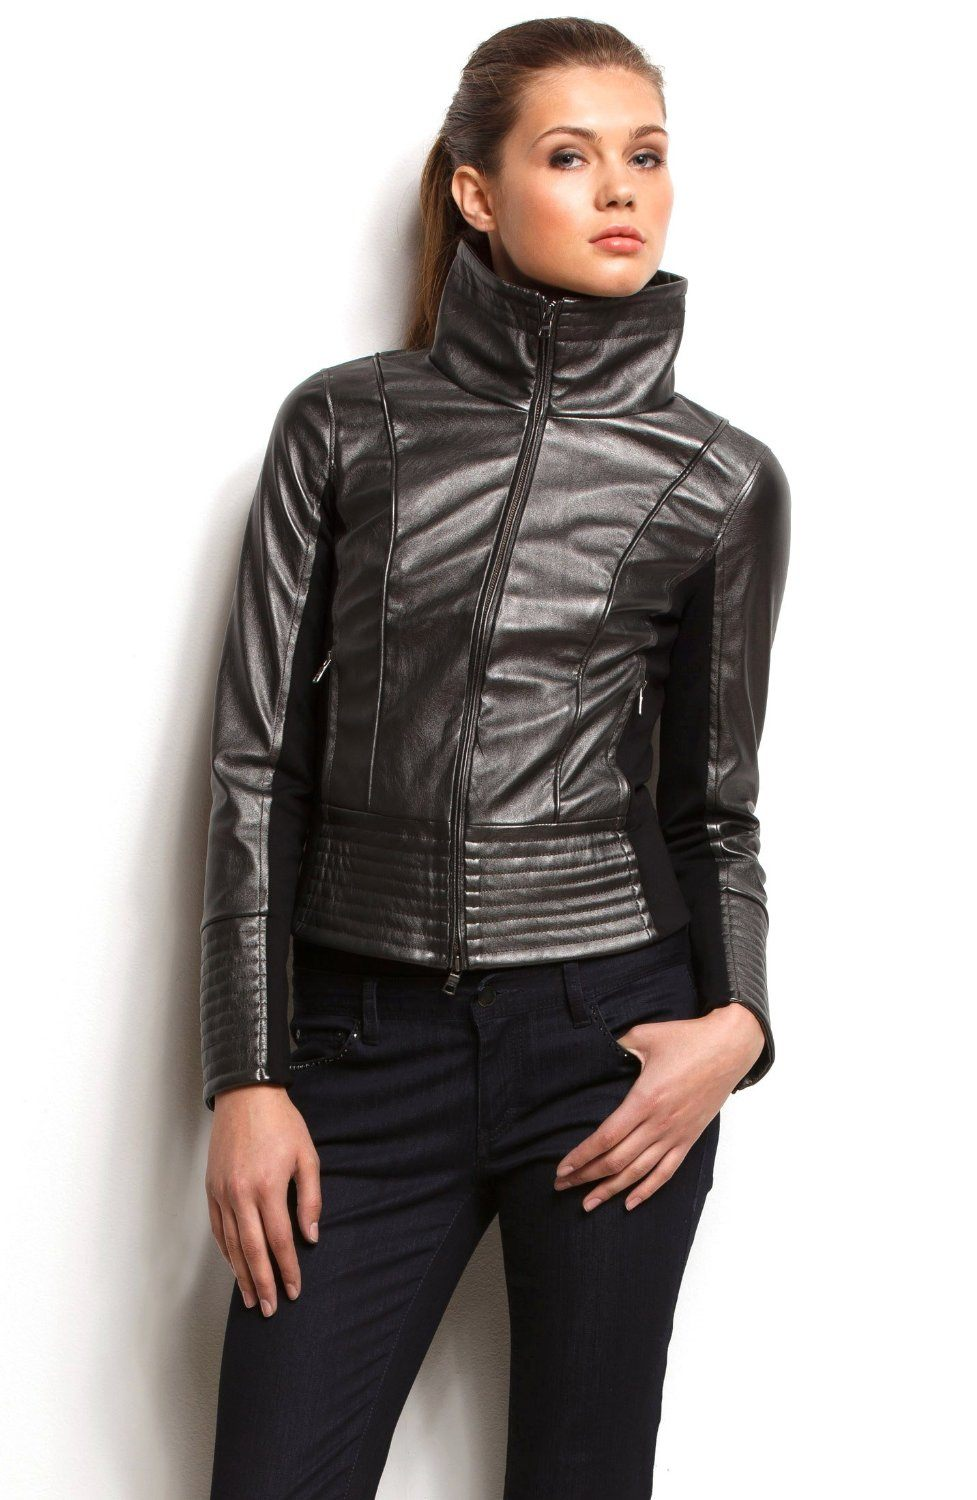 Leather jacket trends